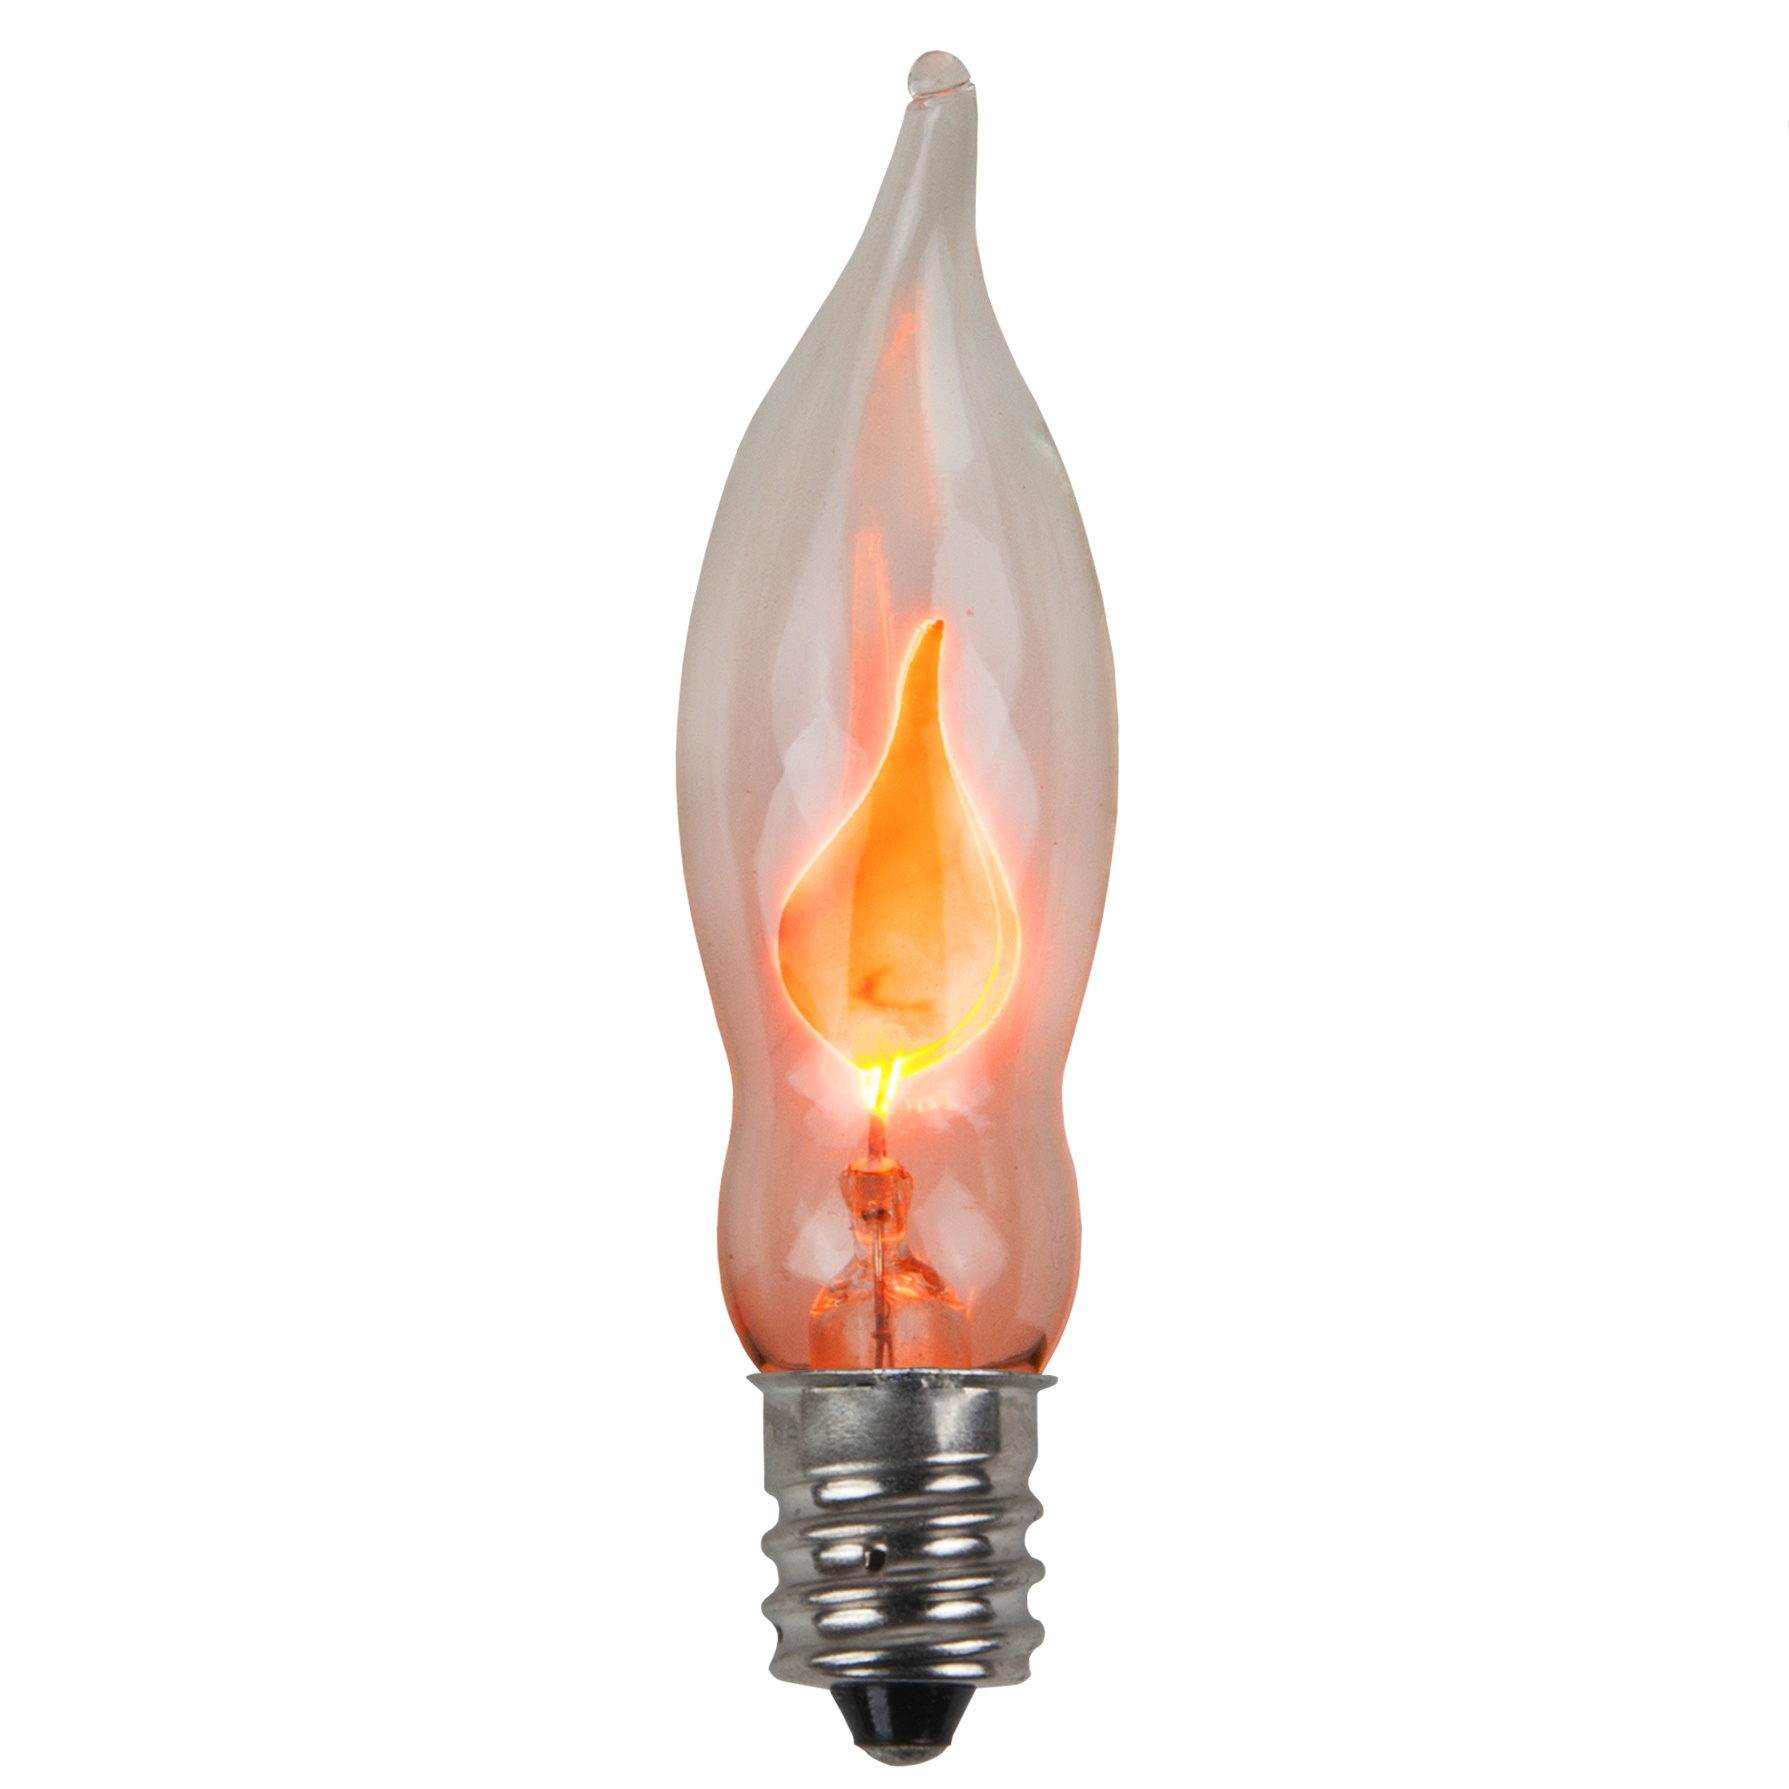 light bulb c7 flicker flame clear christmas light bulbs pack of 2. Black Bedroom Furniture Sets. Home Design Ideas